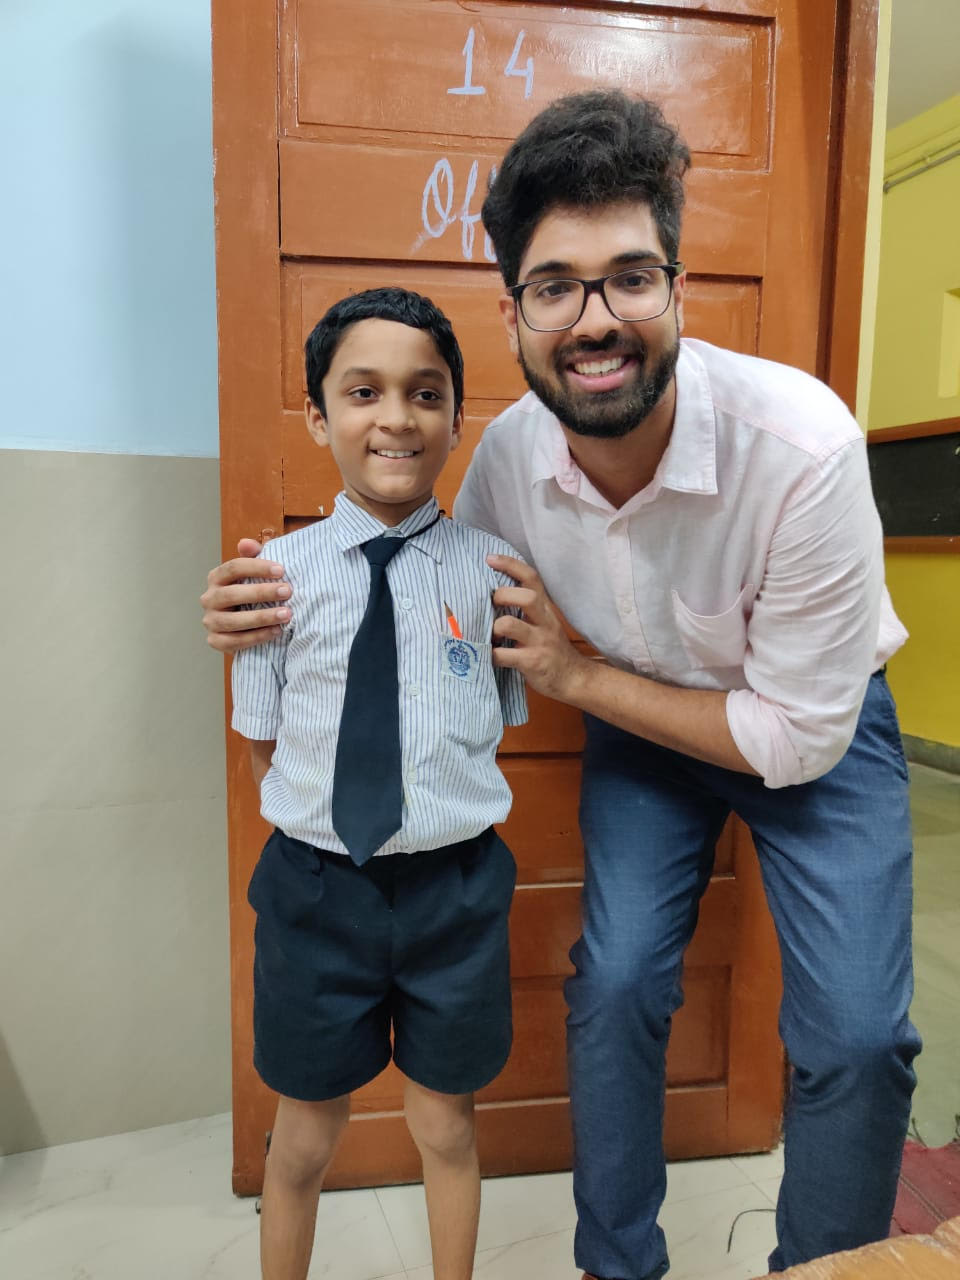 Fareed with his teacher Sankalp, a Teach for India Fellow in August 2019